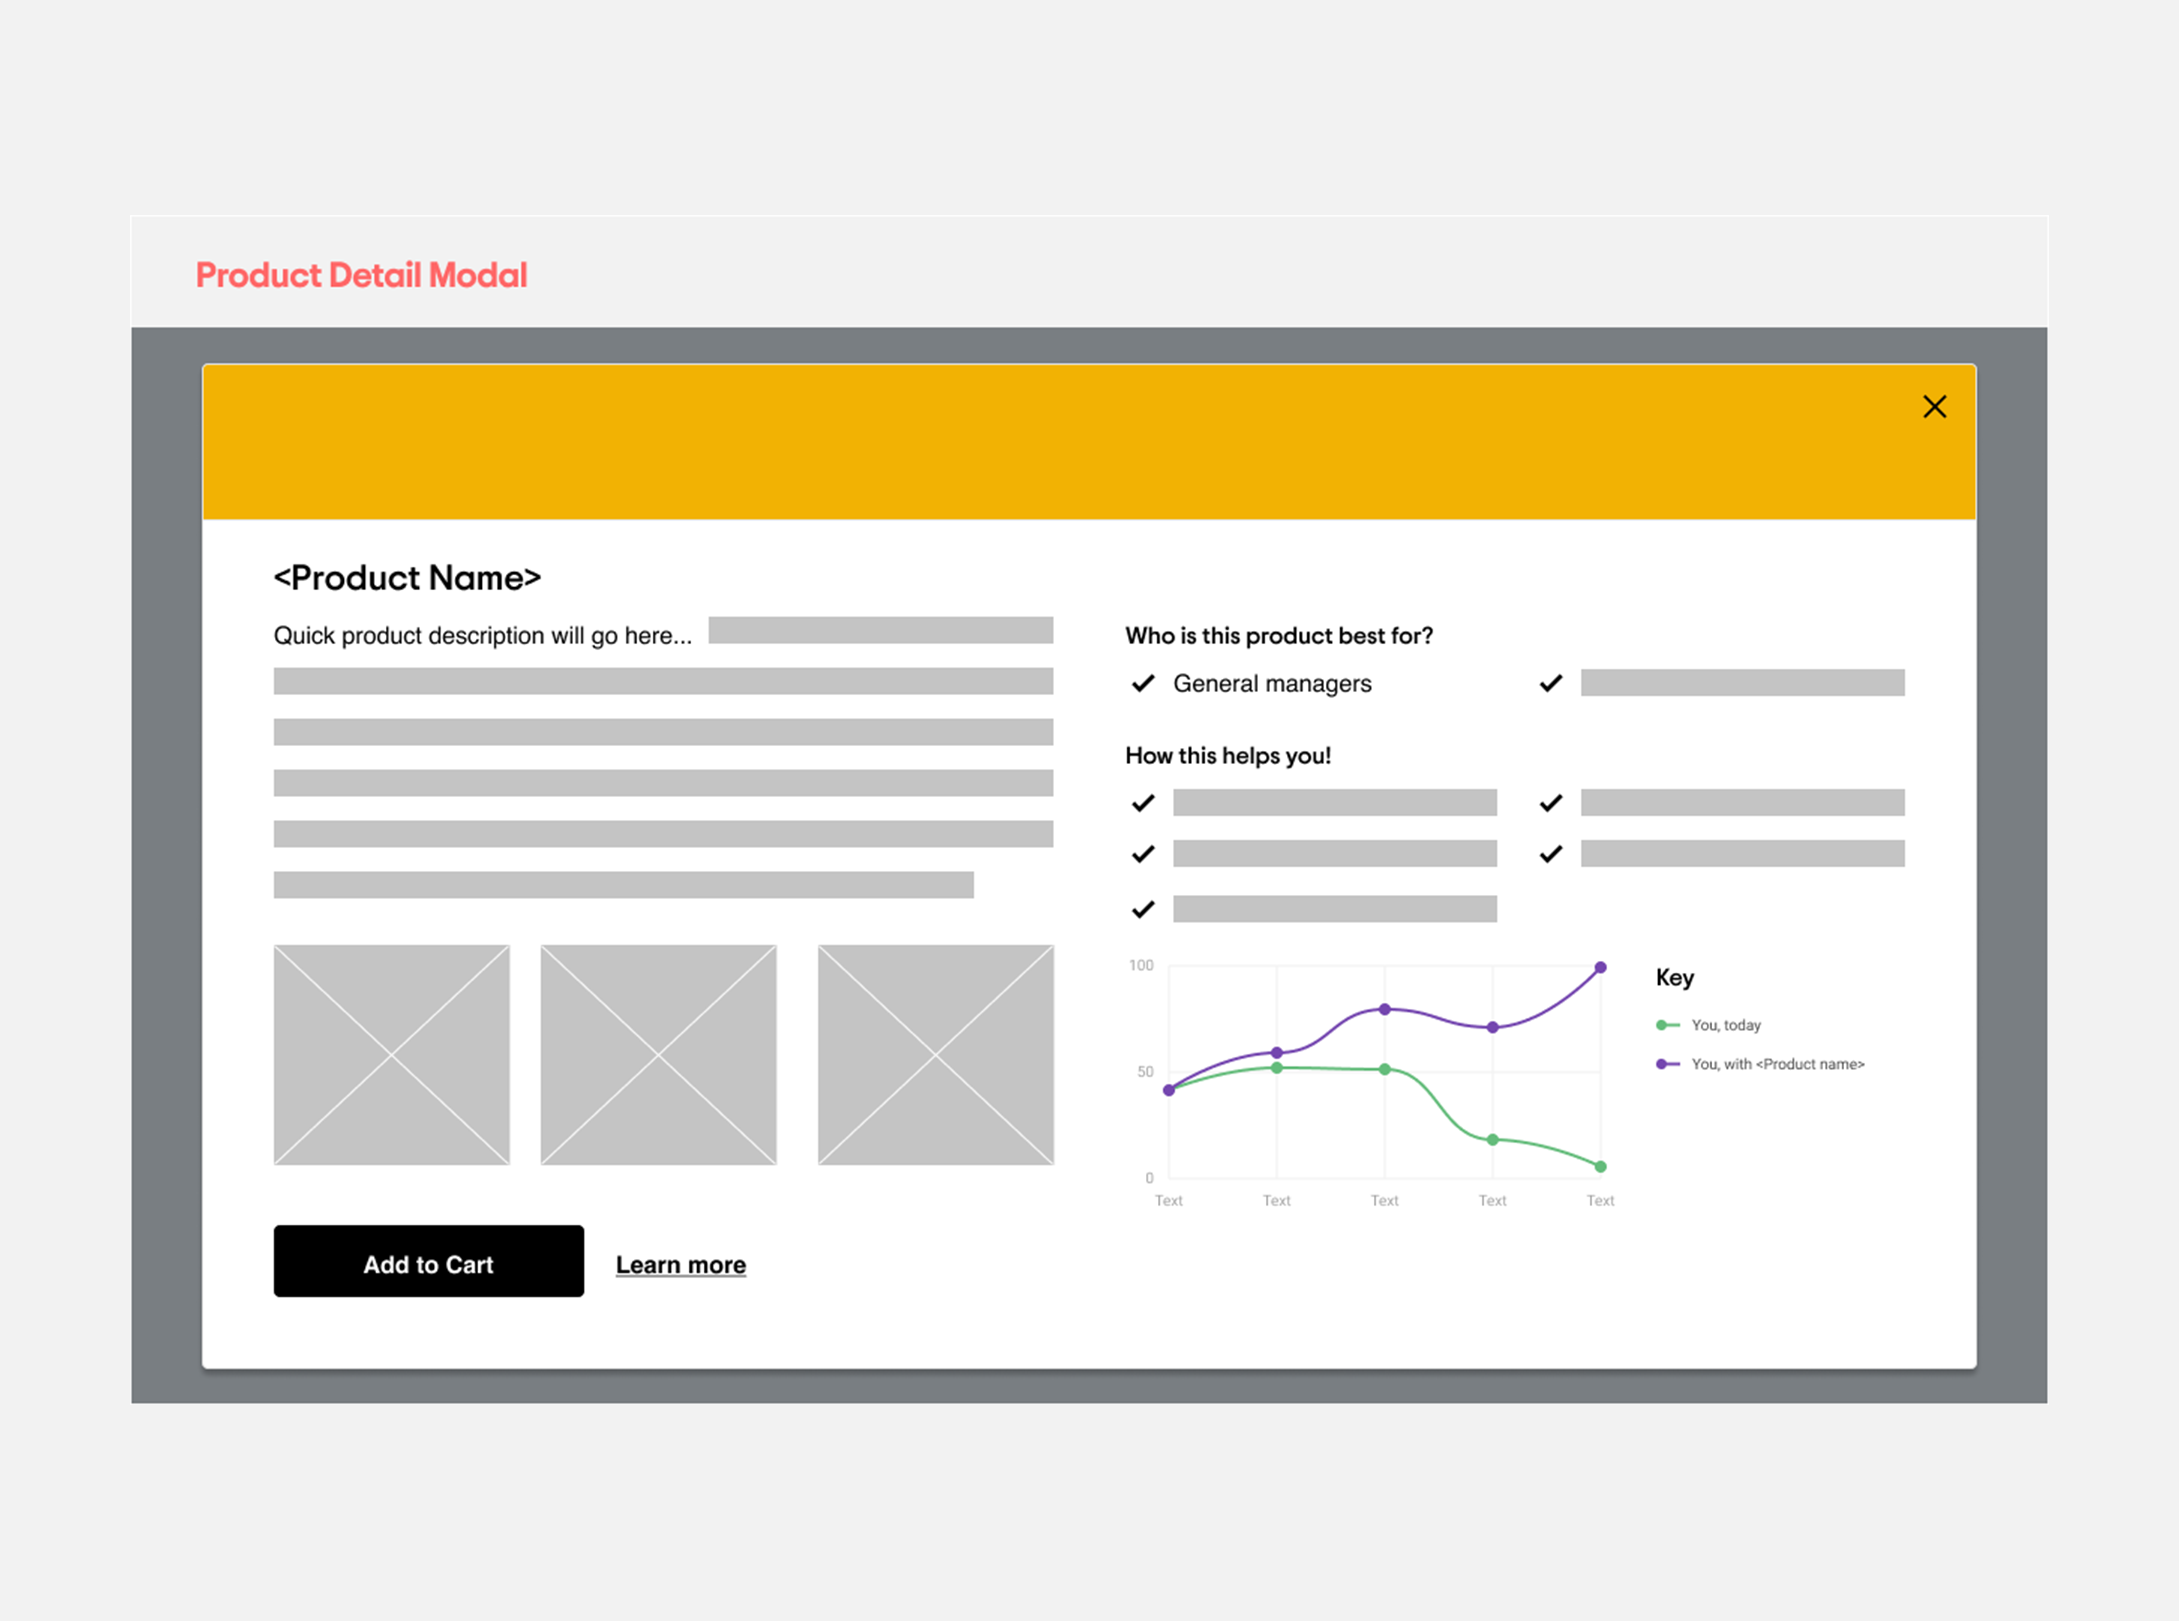 Product Detail Modal – Data